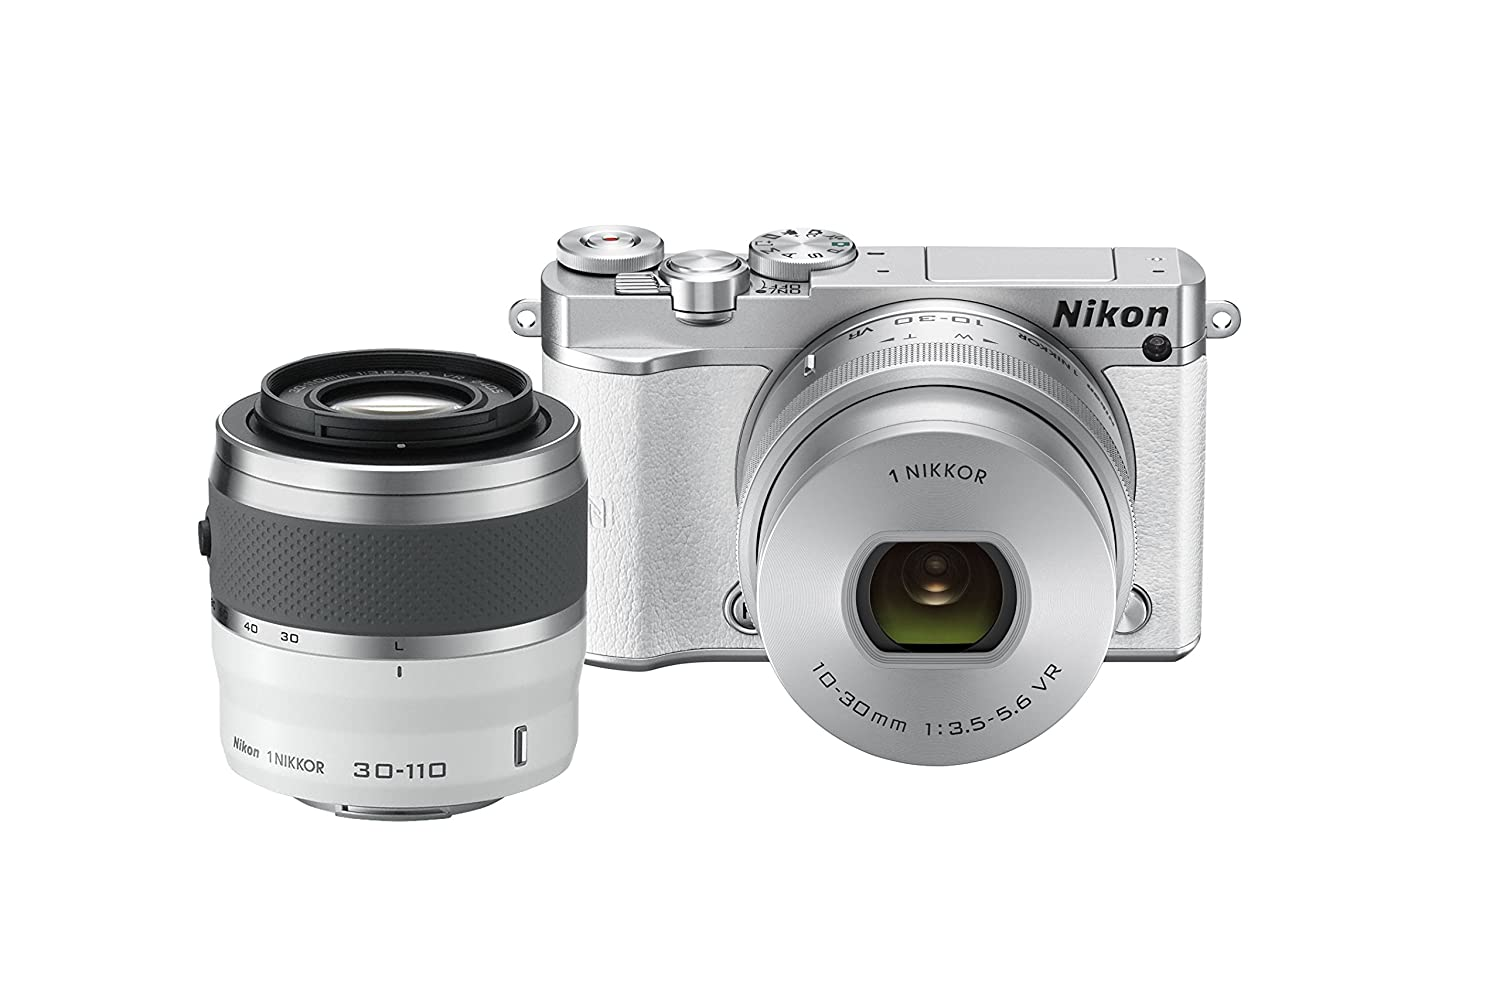 Nikon Nikon 1 J5 Mirrorless Digital Camera (With 30-110mm Lens)